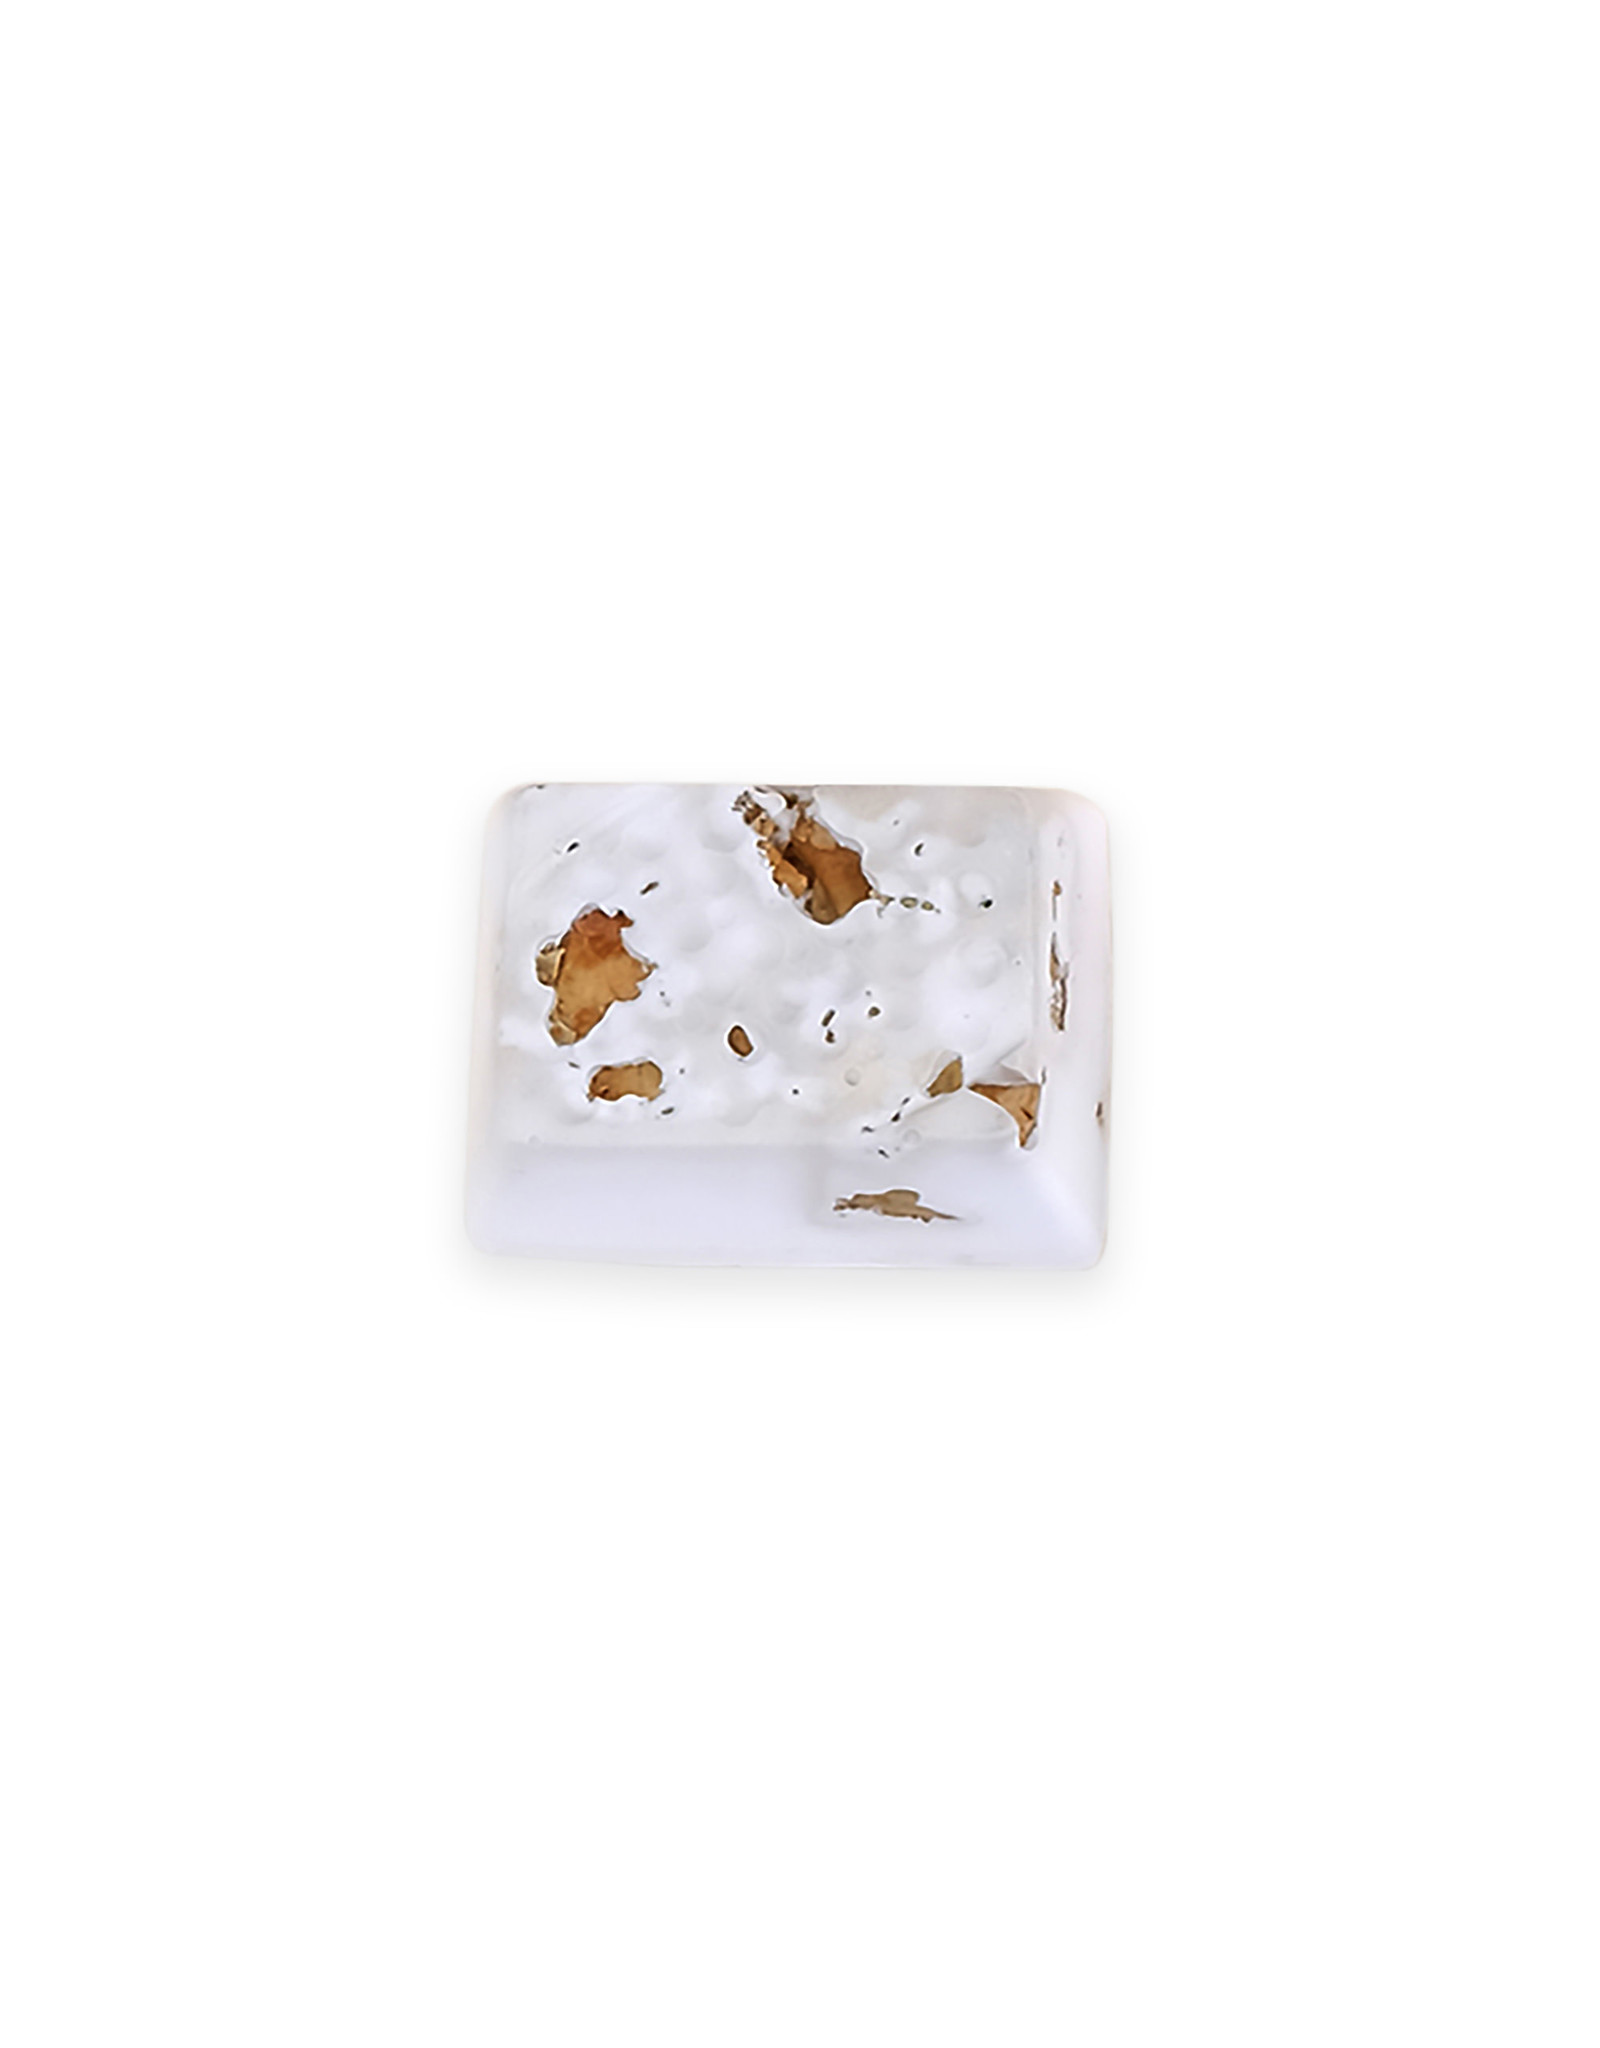 Living World Living World Small Animal Mineral Block, Apple Flavour, Small, 40 g (1.4 oz)